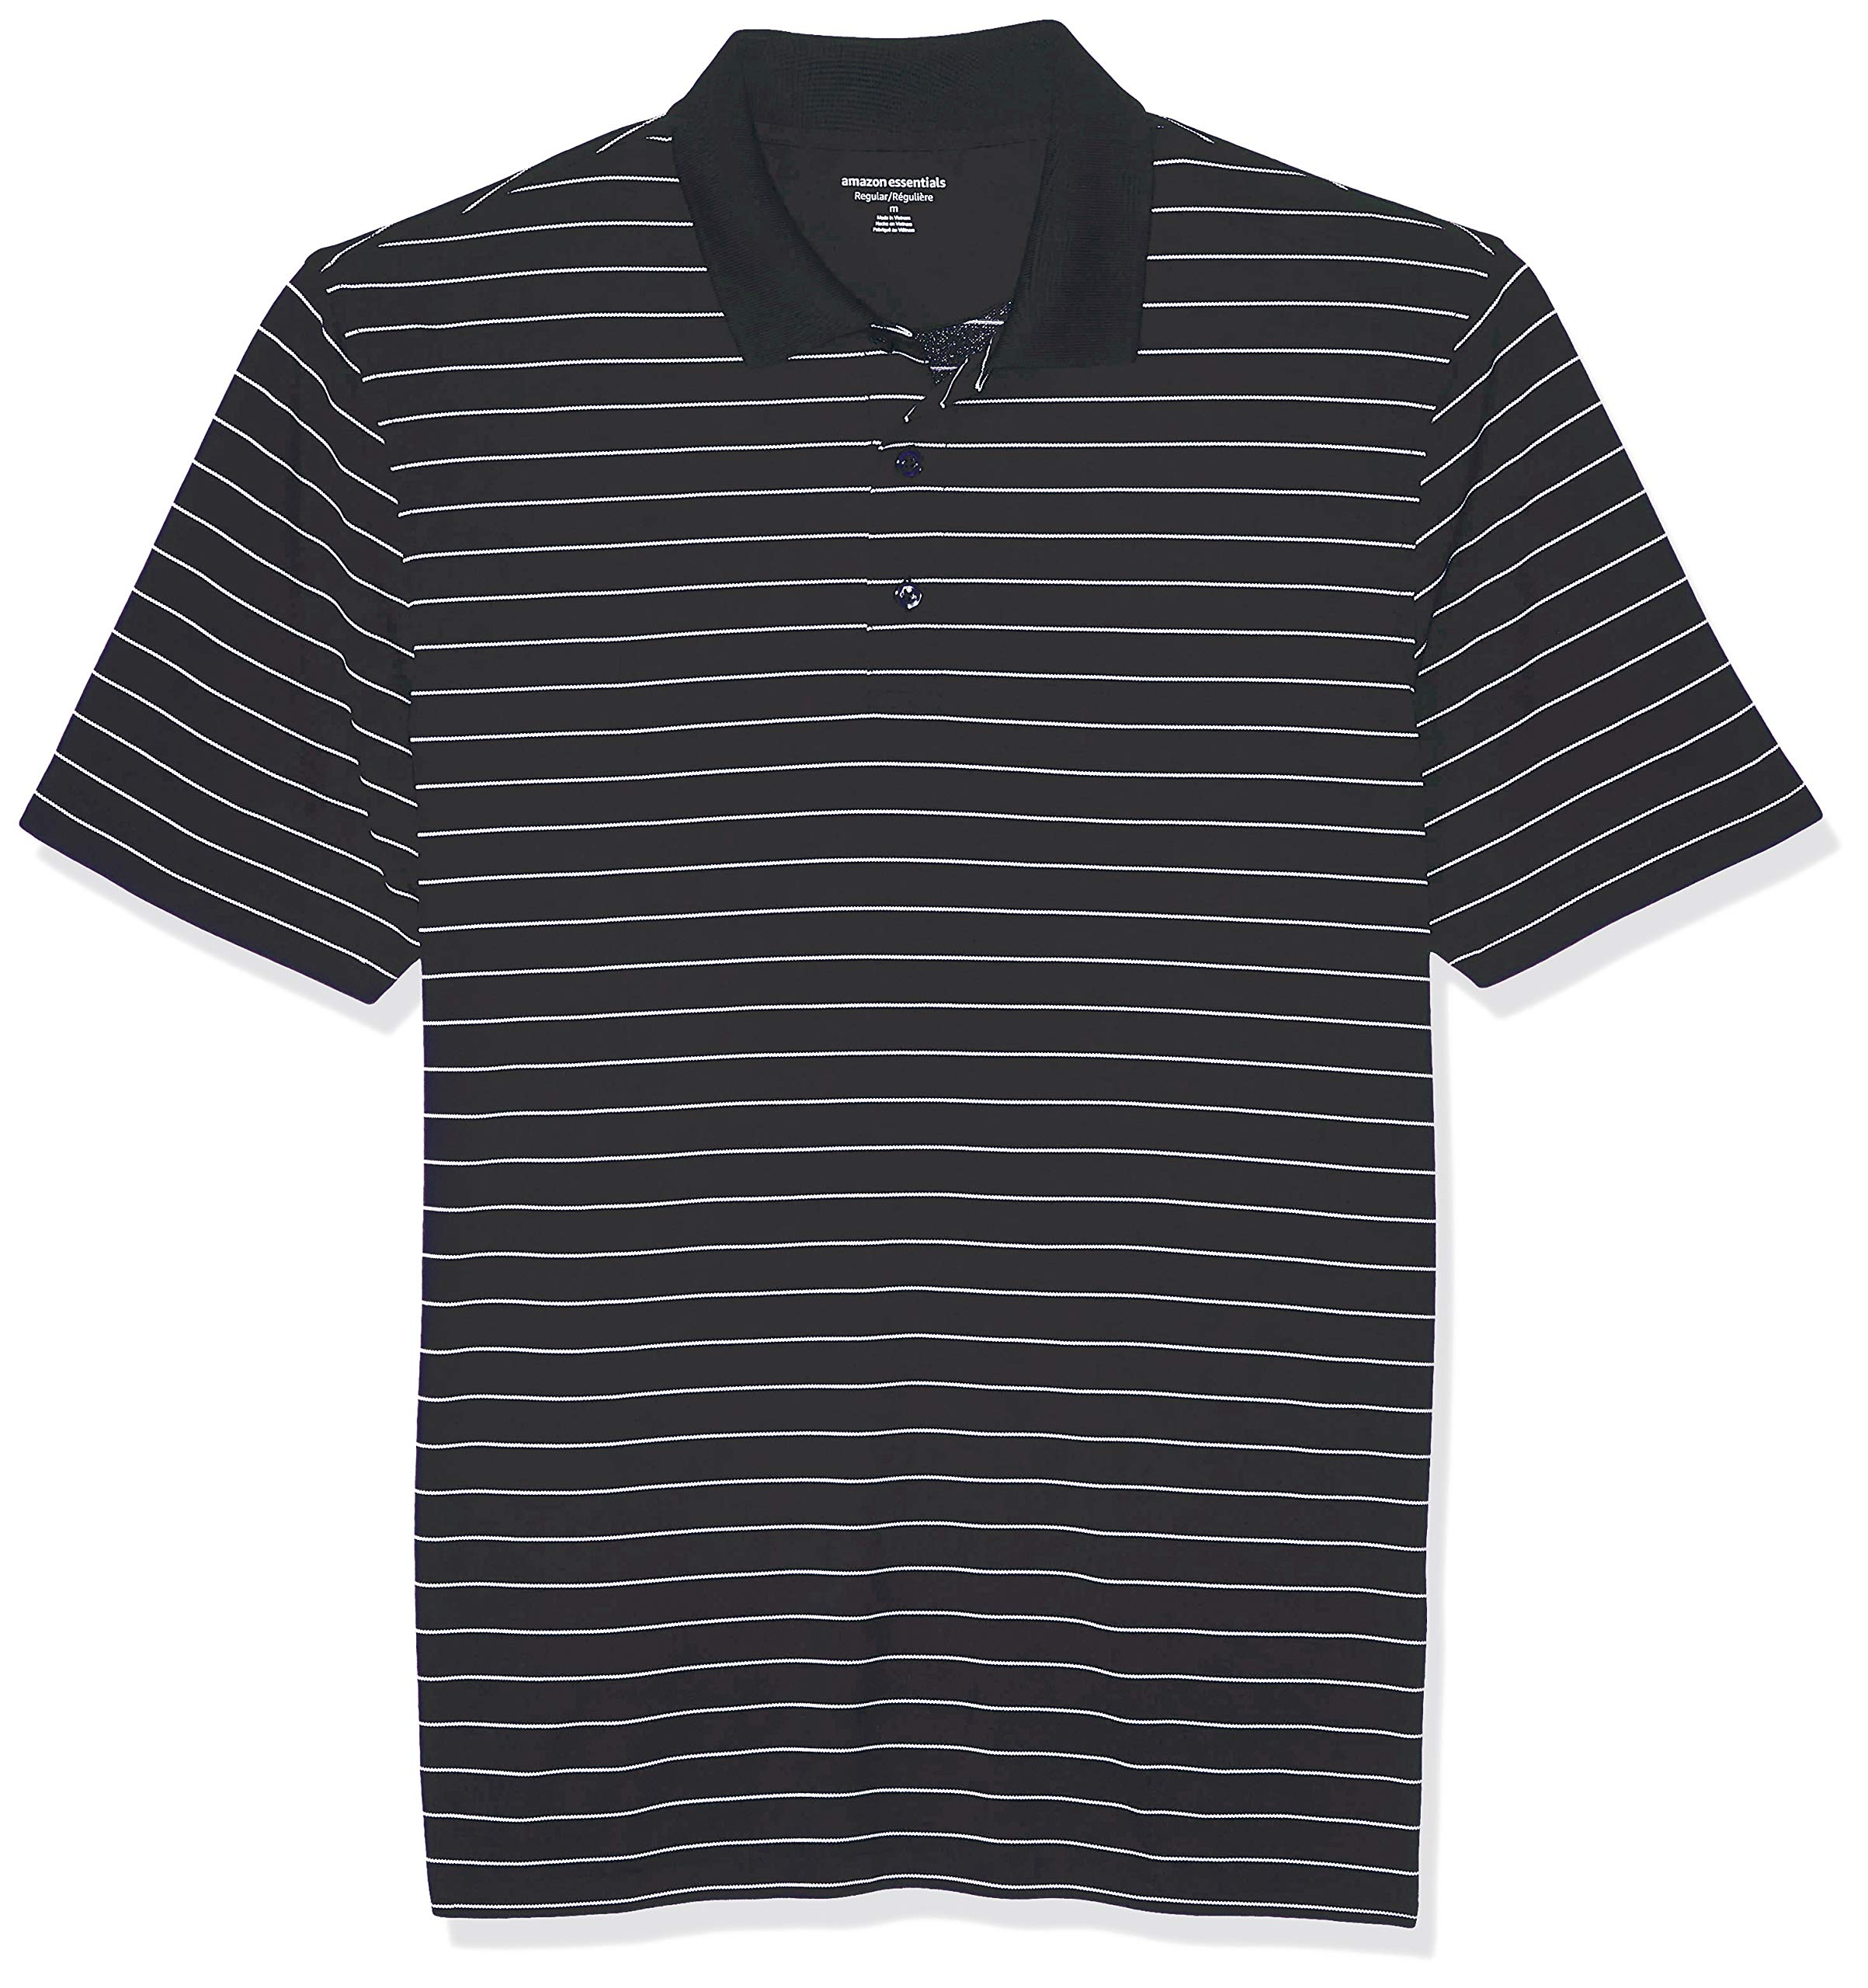 Amazon Essentials Men's Regular-Fit Quick-Dry Golf Polo Shirt, Black Stripe, Small by Amazon Essentials